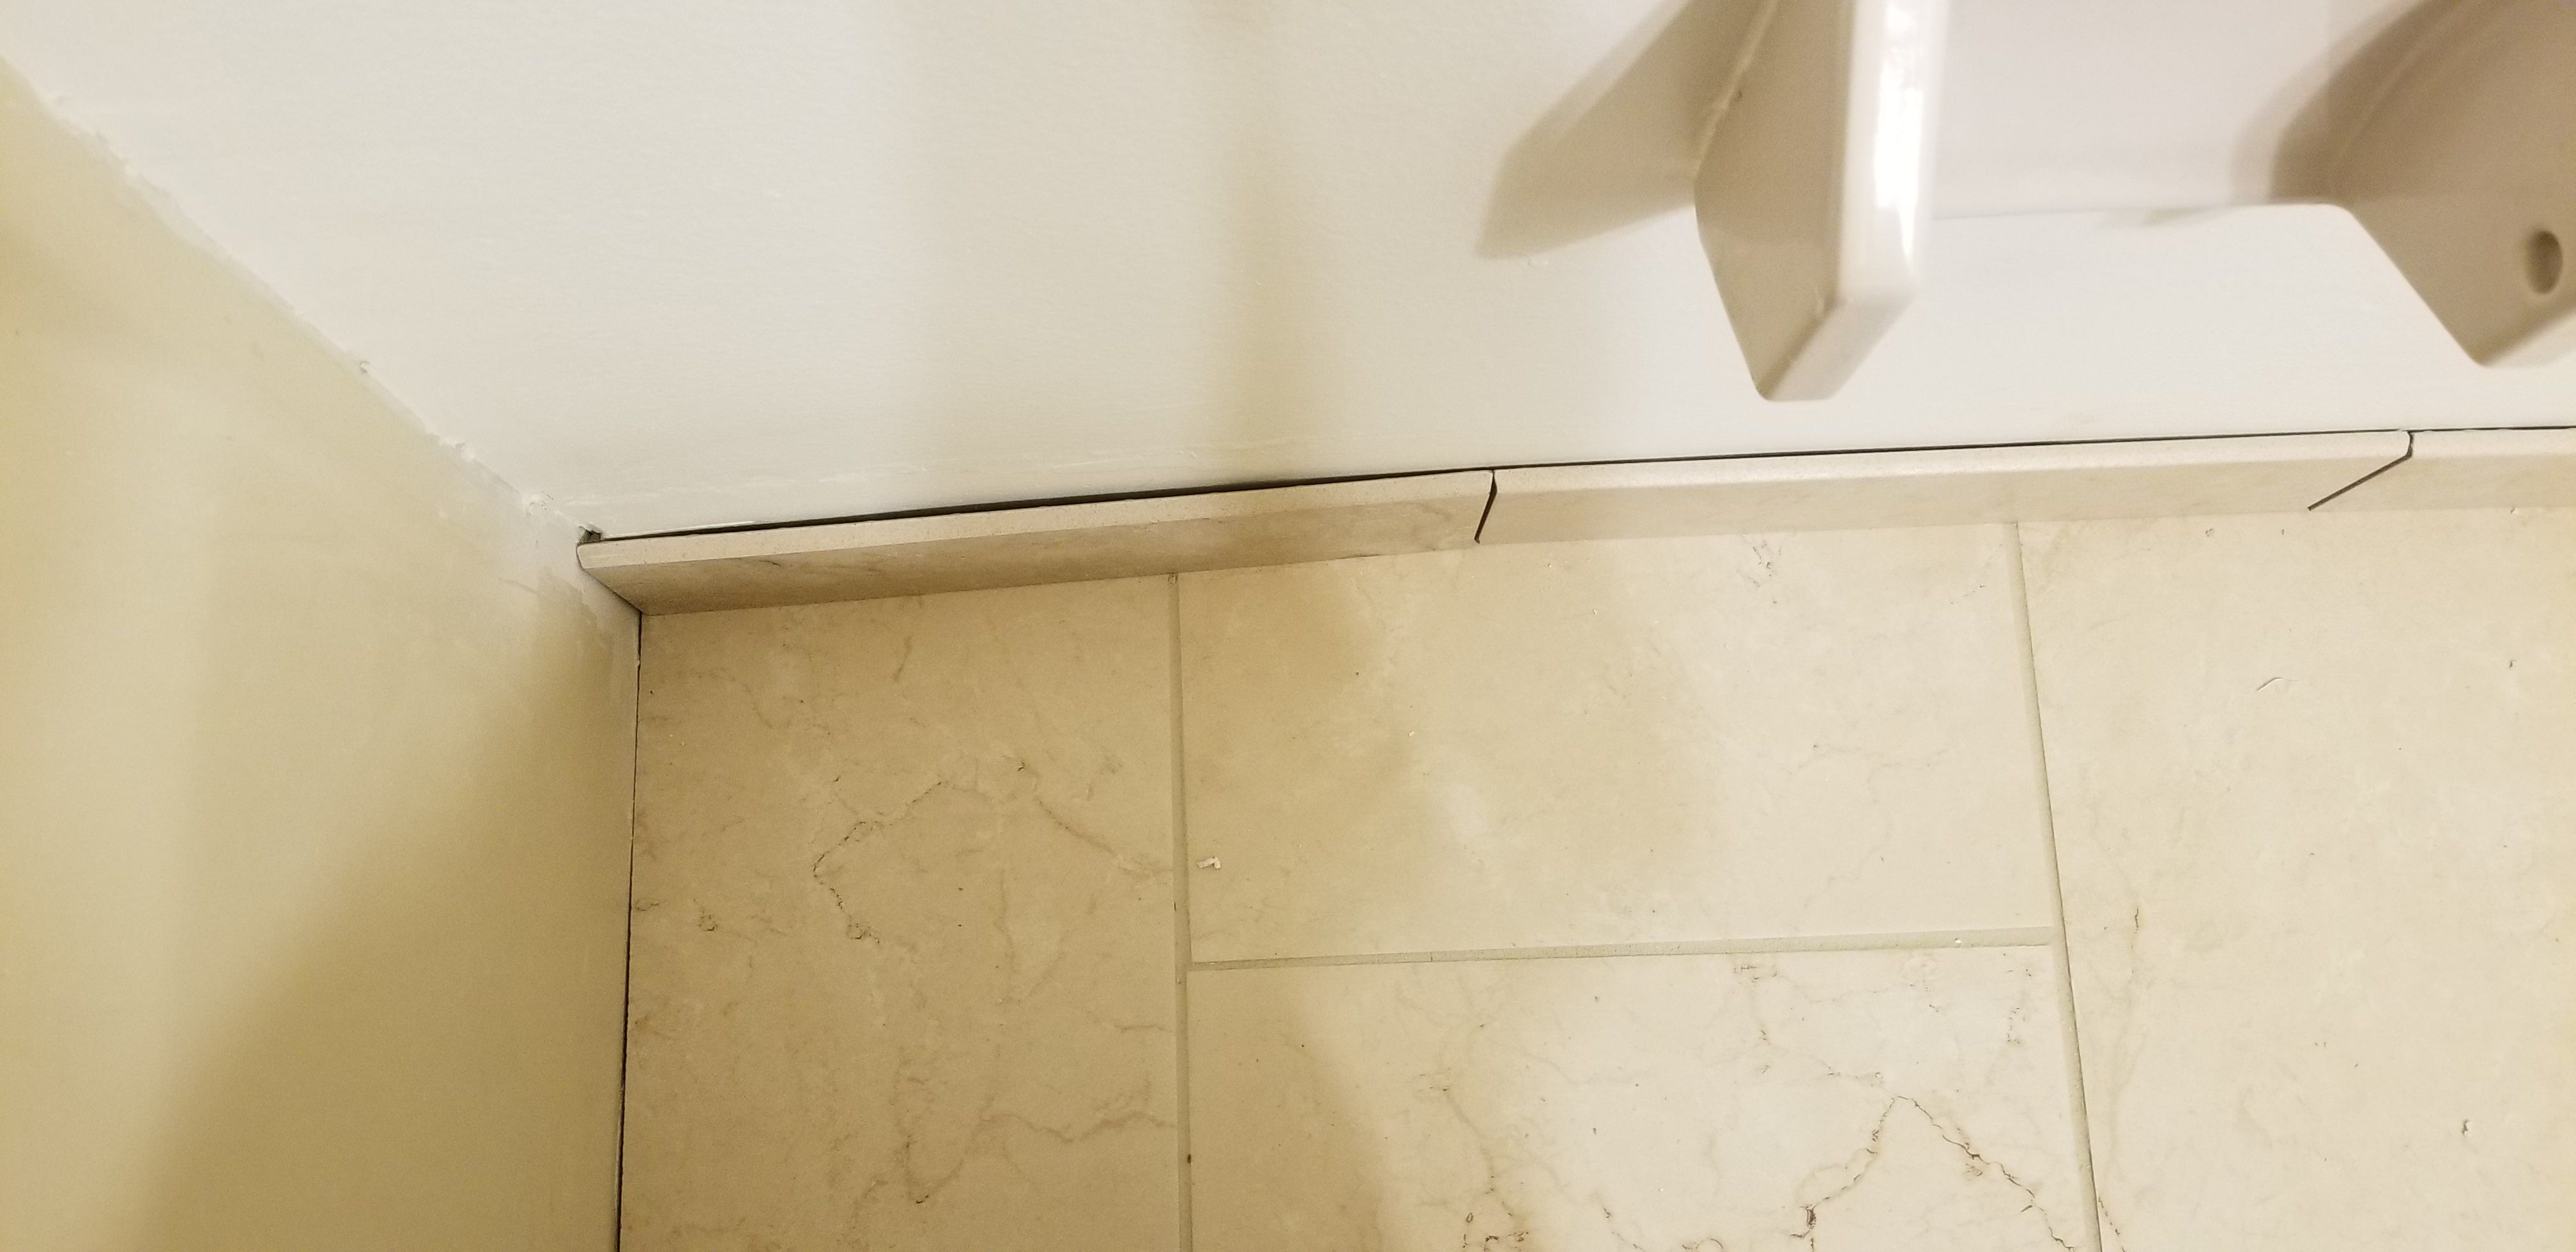 Trying To Put The Trim Tile In And As You Can See Wherebthe First